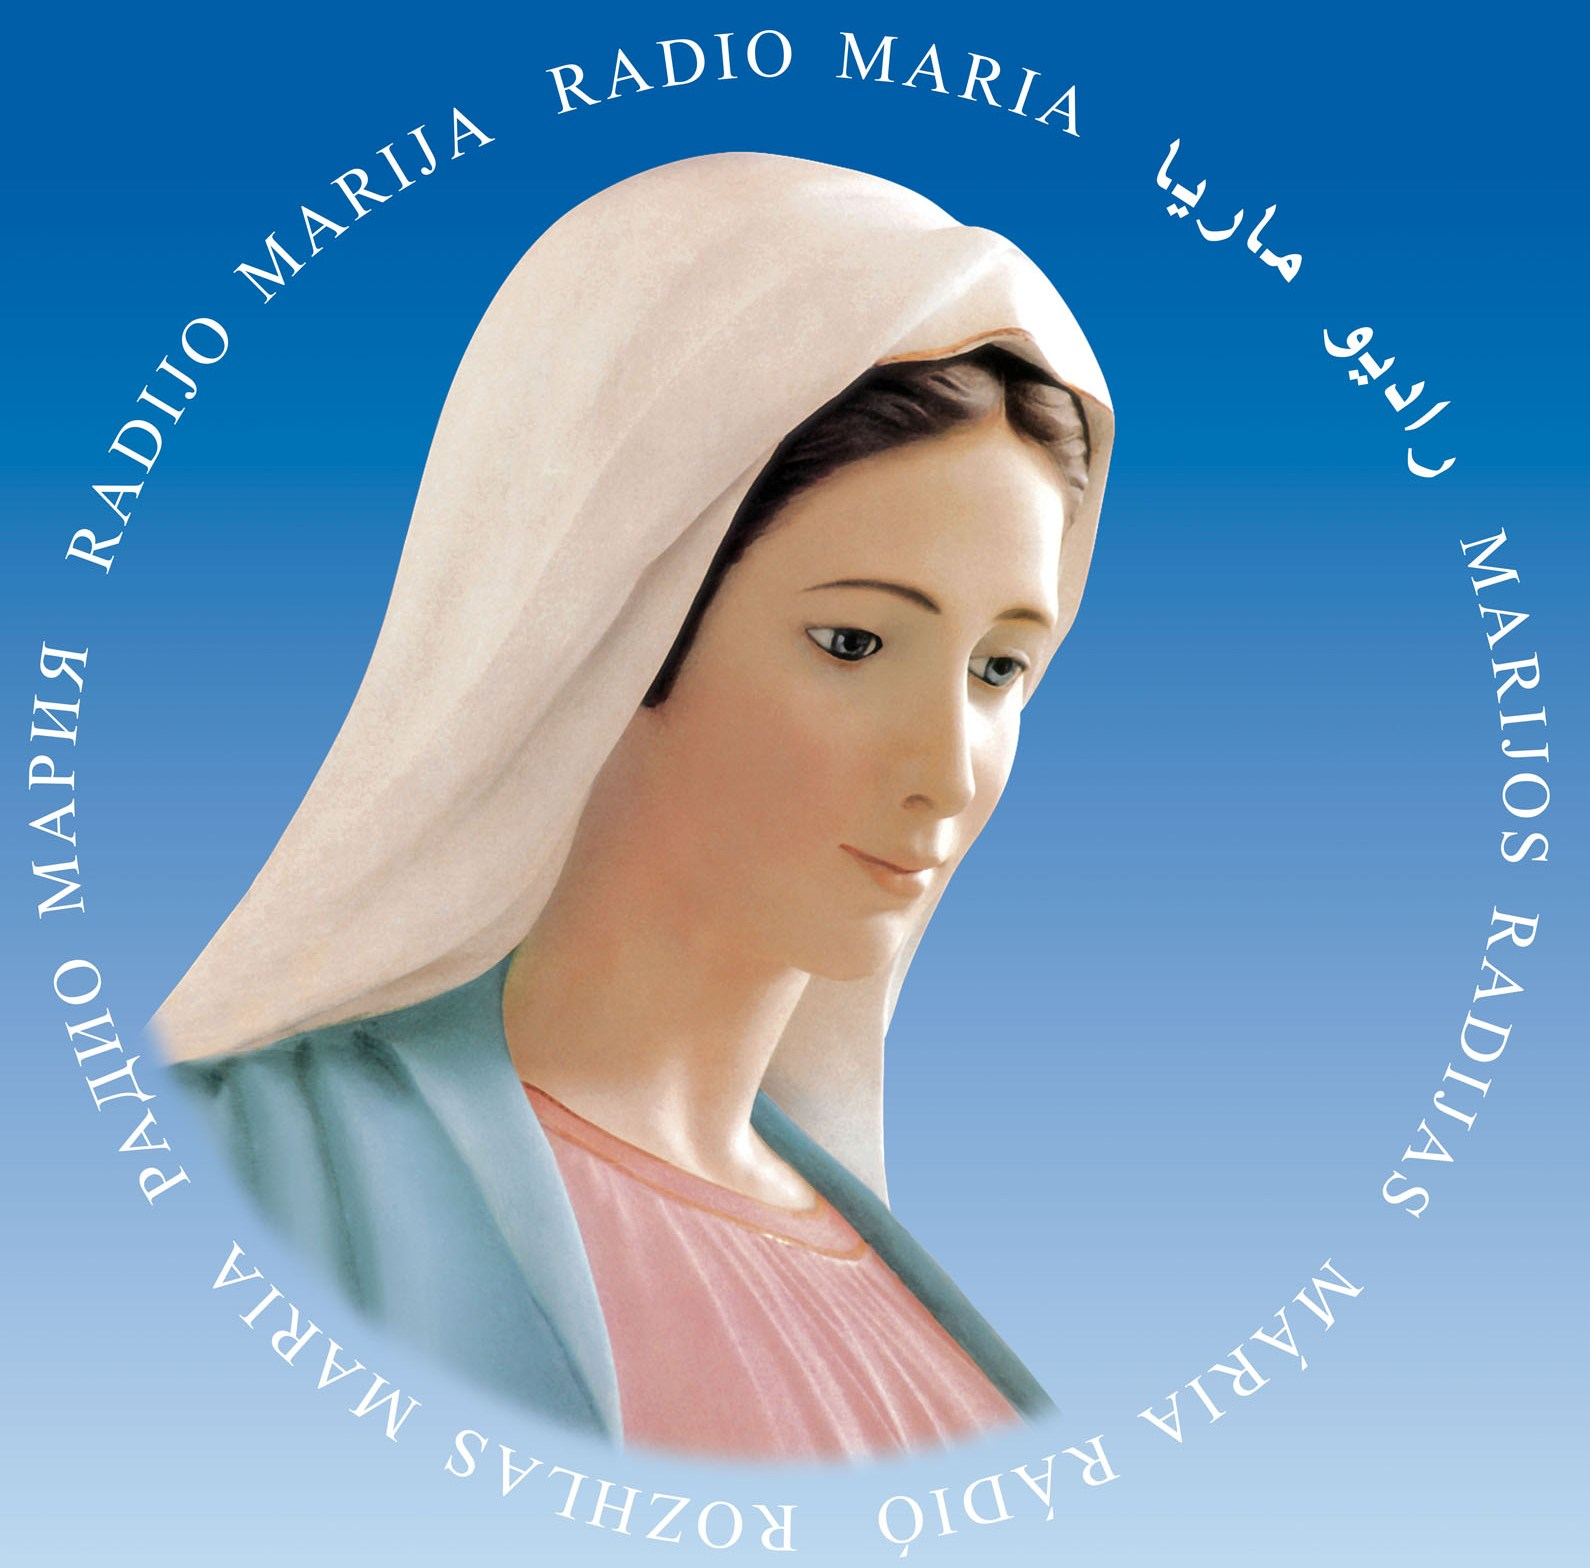 RADIO MARIA INTERVIEW